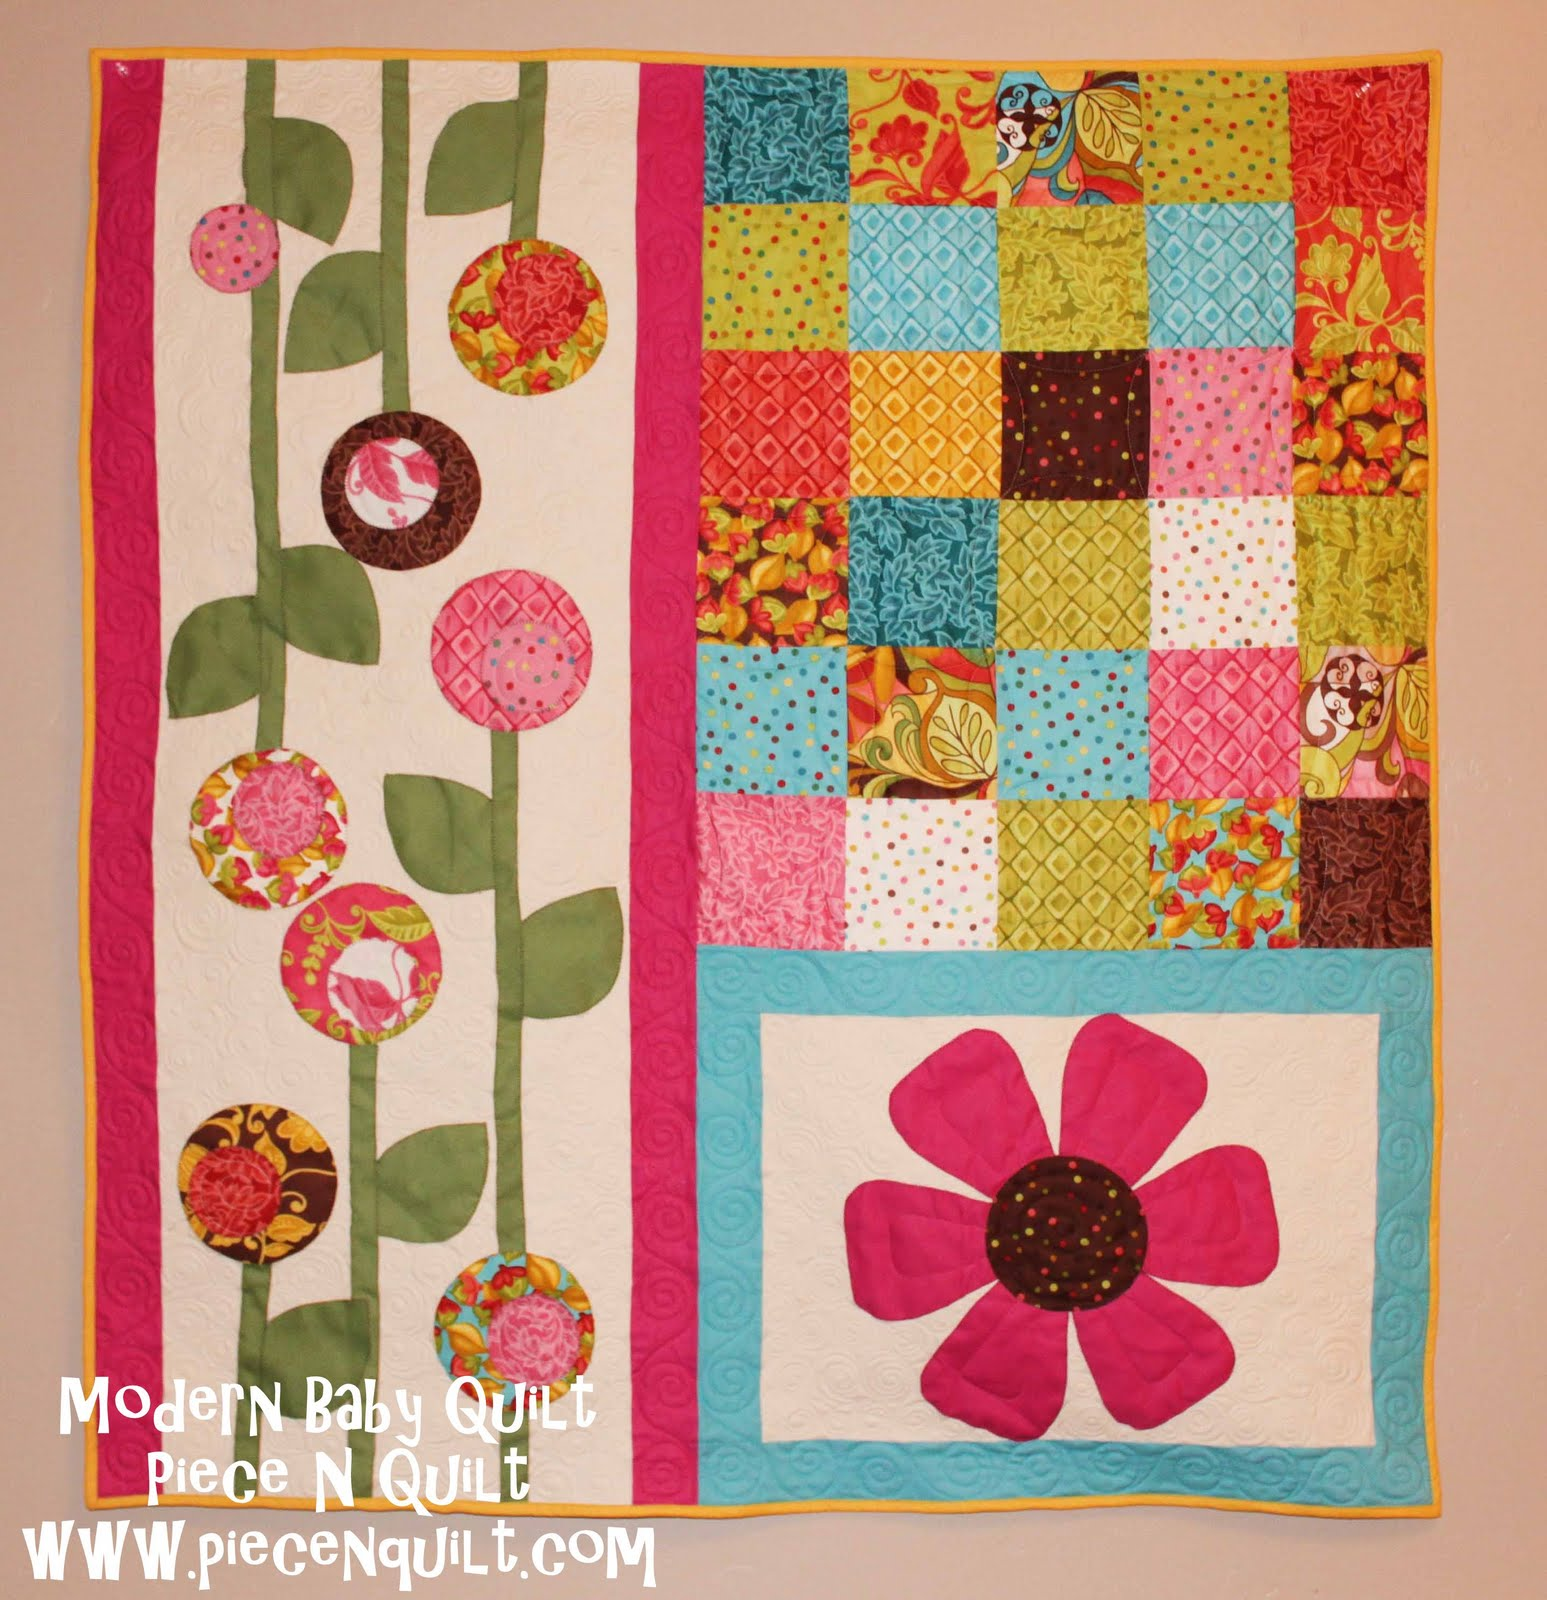 Simple Modern Quilt Patterns Free : Tutorial Modern Easy Baby Quilt Patterns Simple